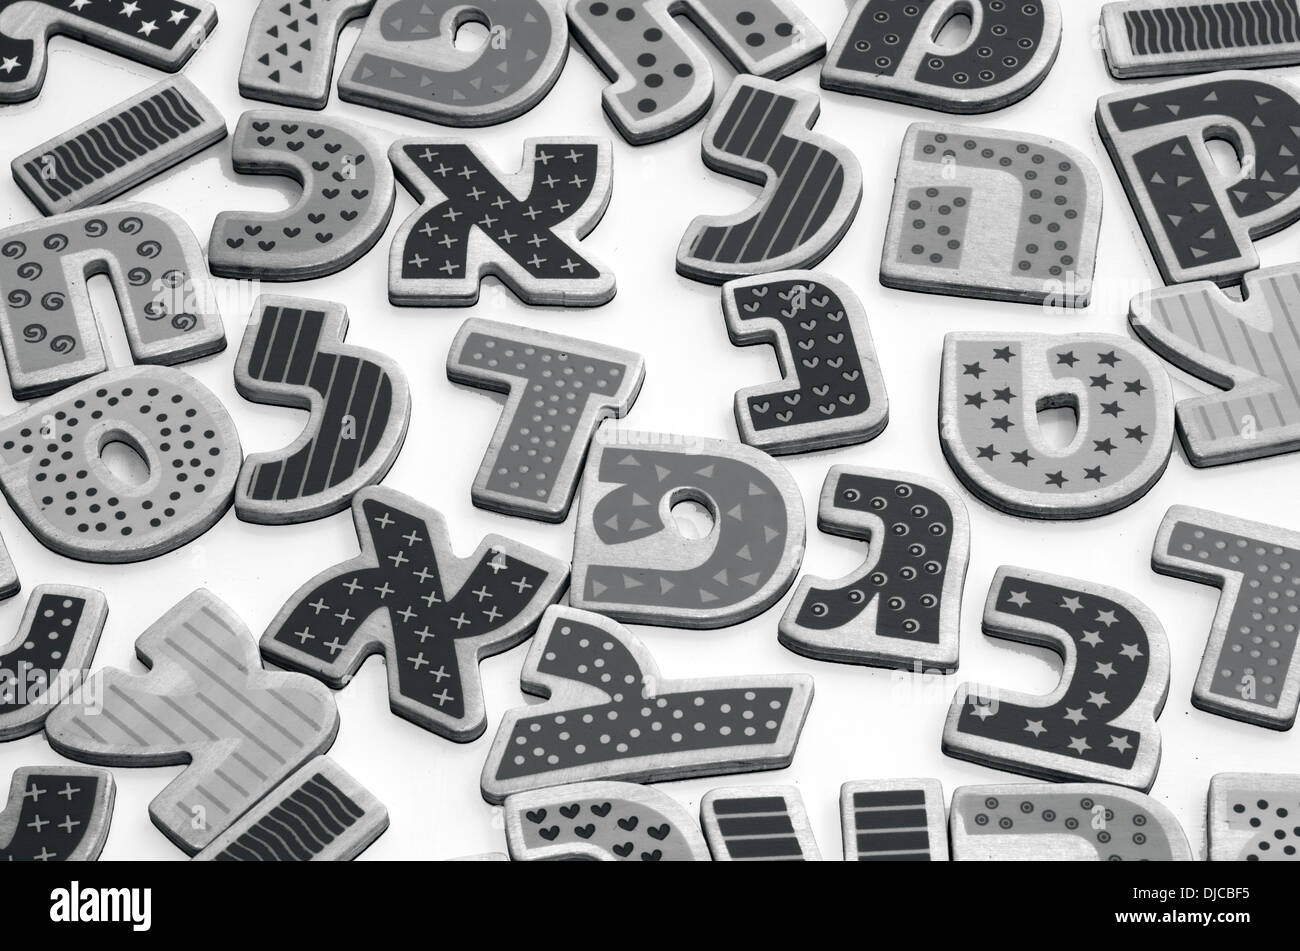 Hebrew alphabet letters and characters background (BW) - Stock Image